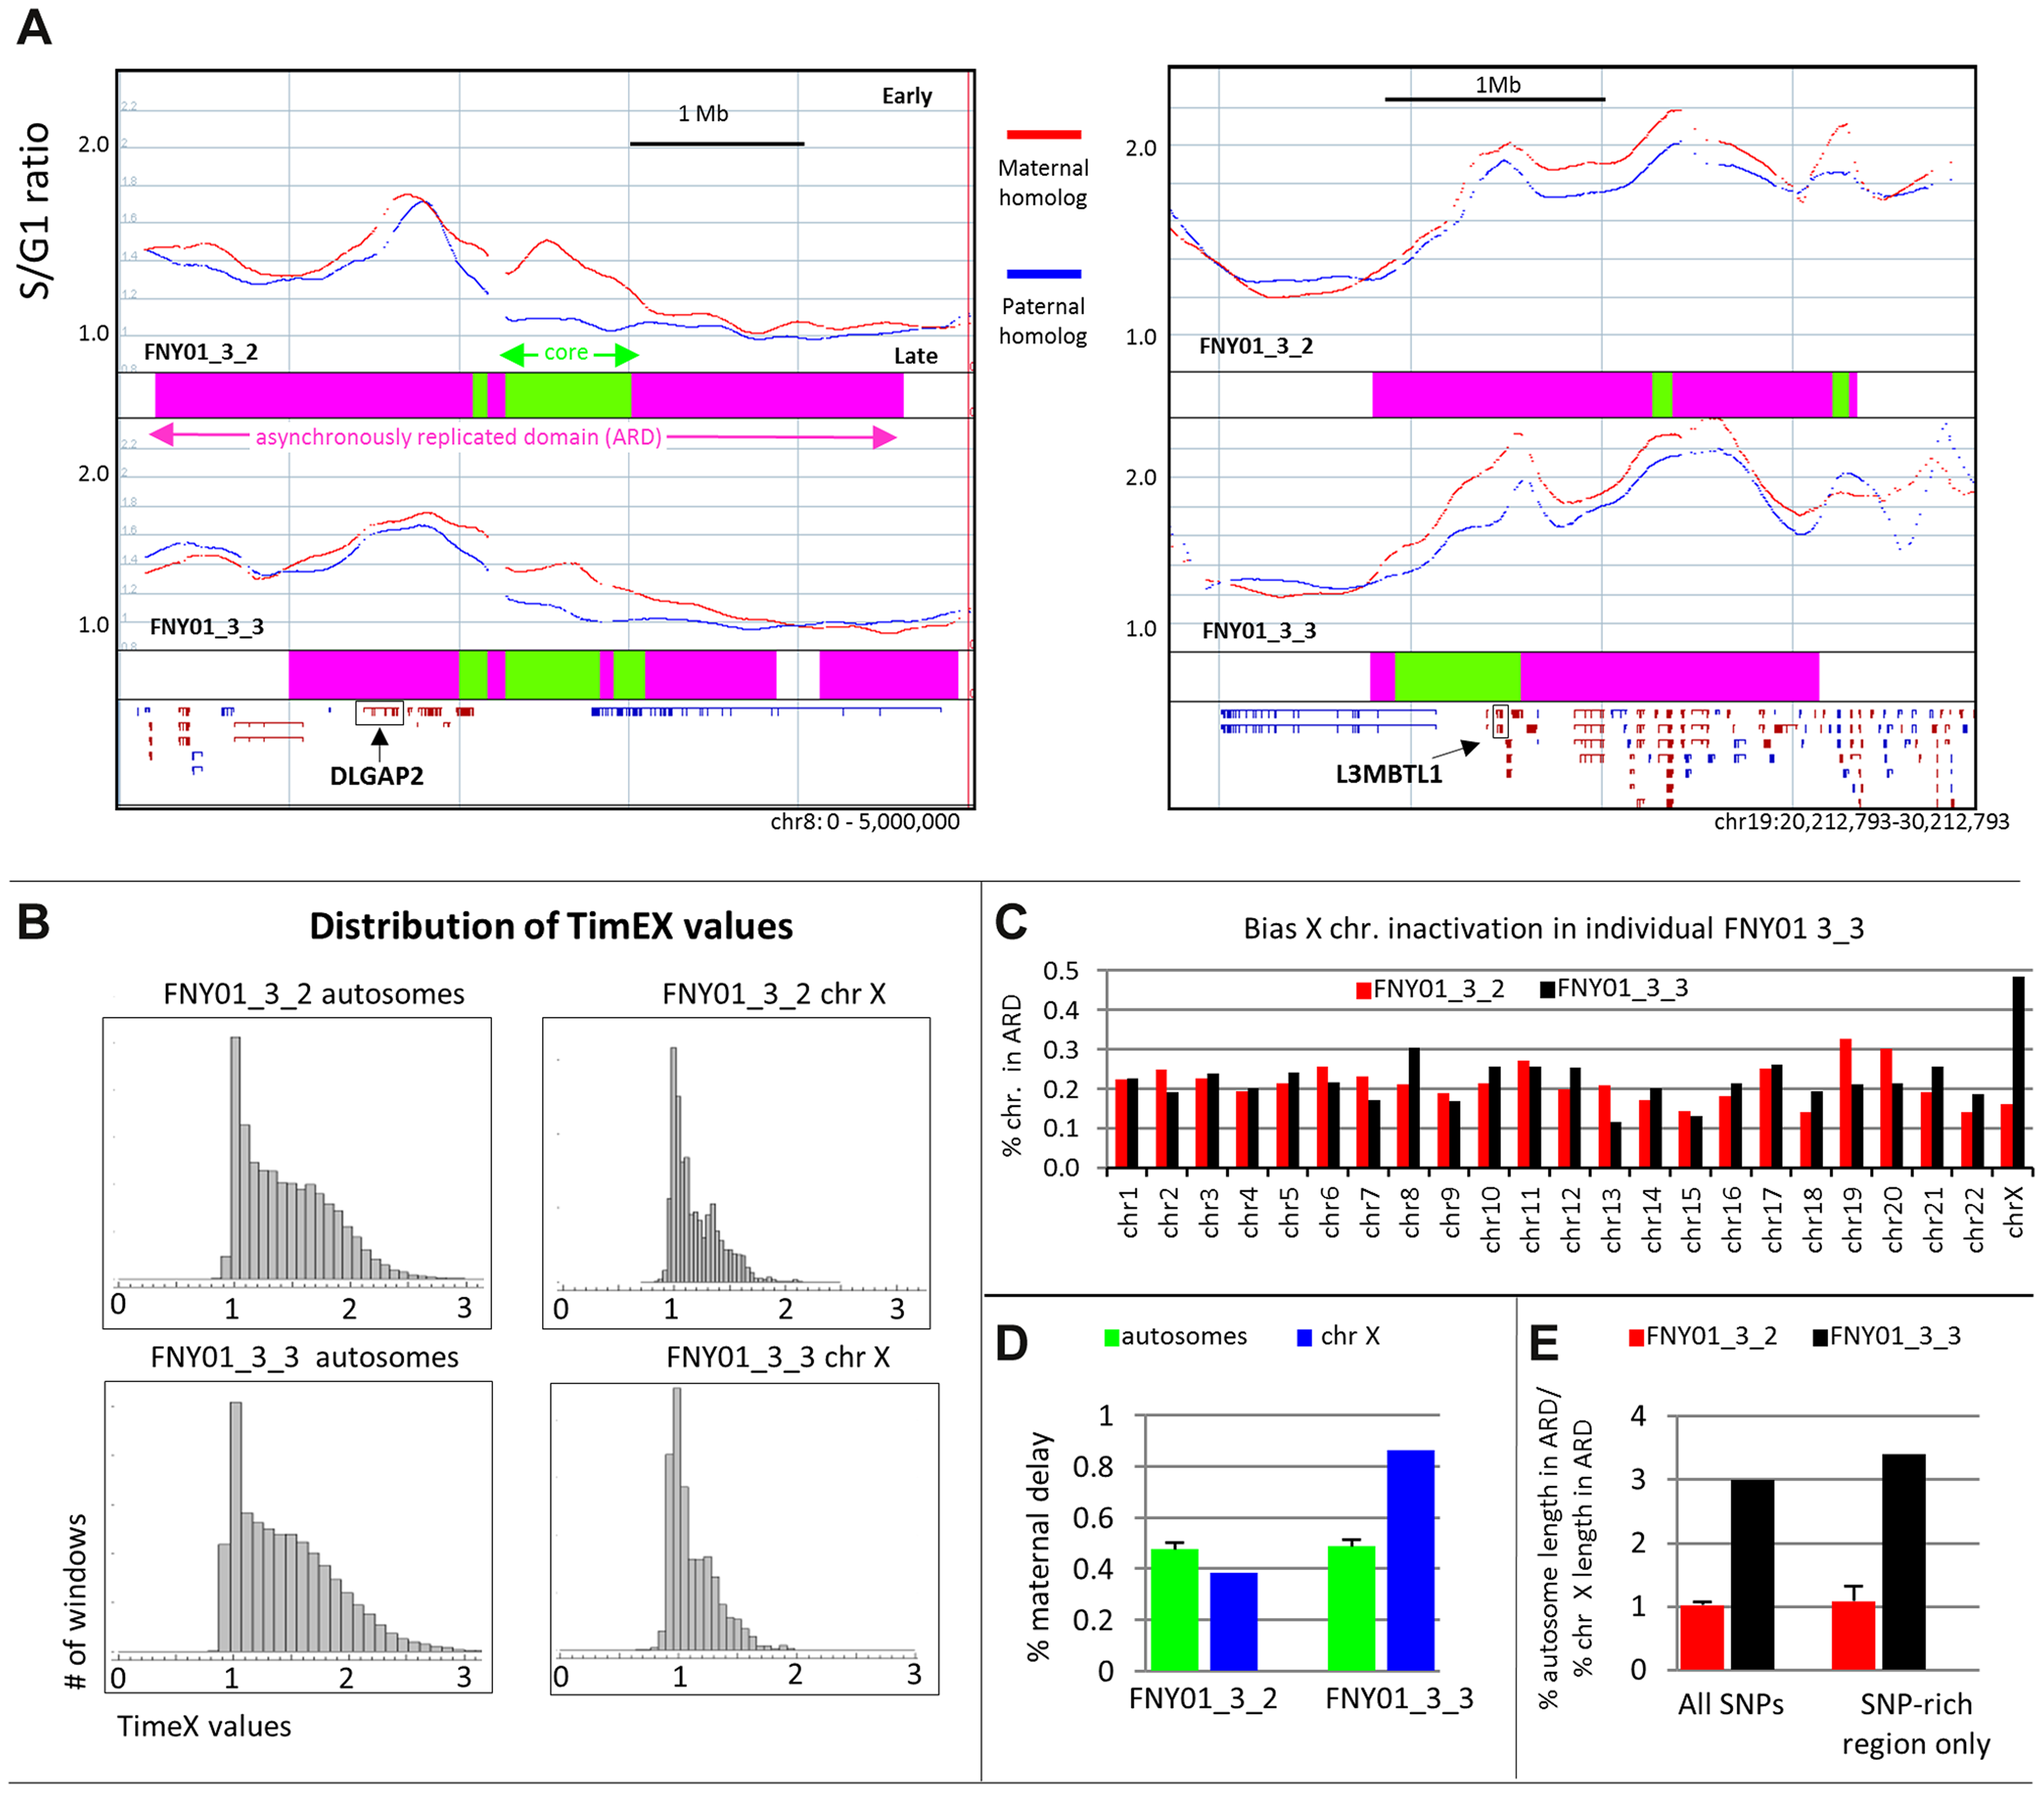 Large asynchronously replicated region contains imprinted genes.